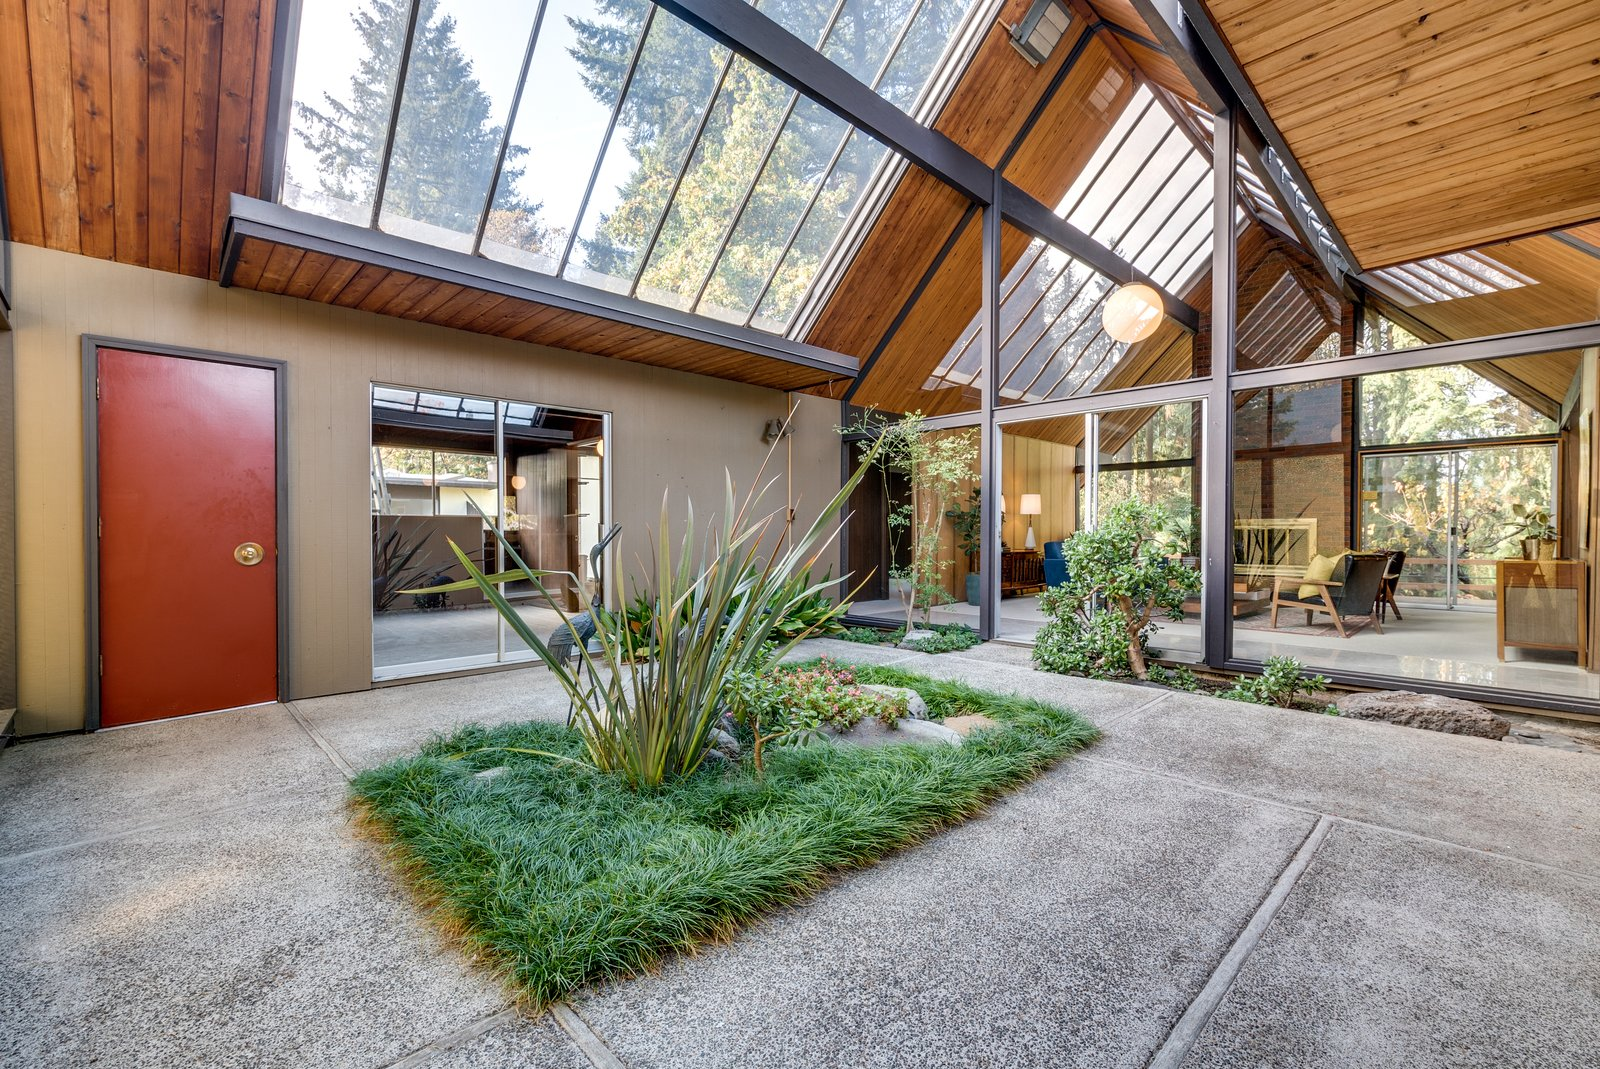 A midcentury rummer home near portland hits the market for 699k